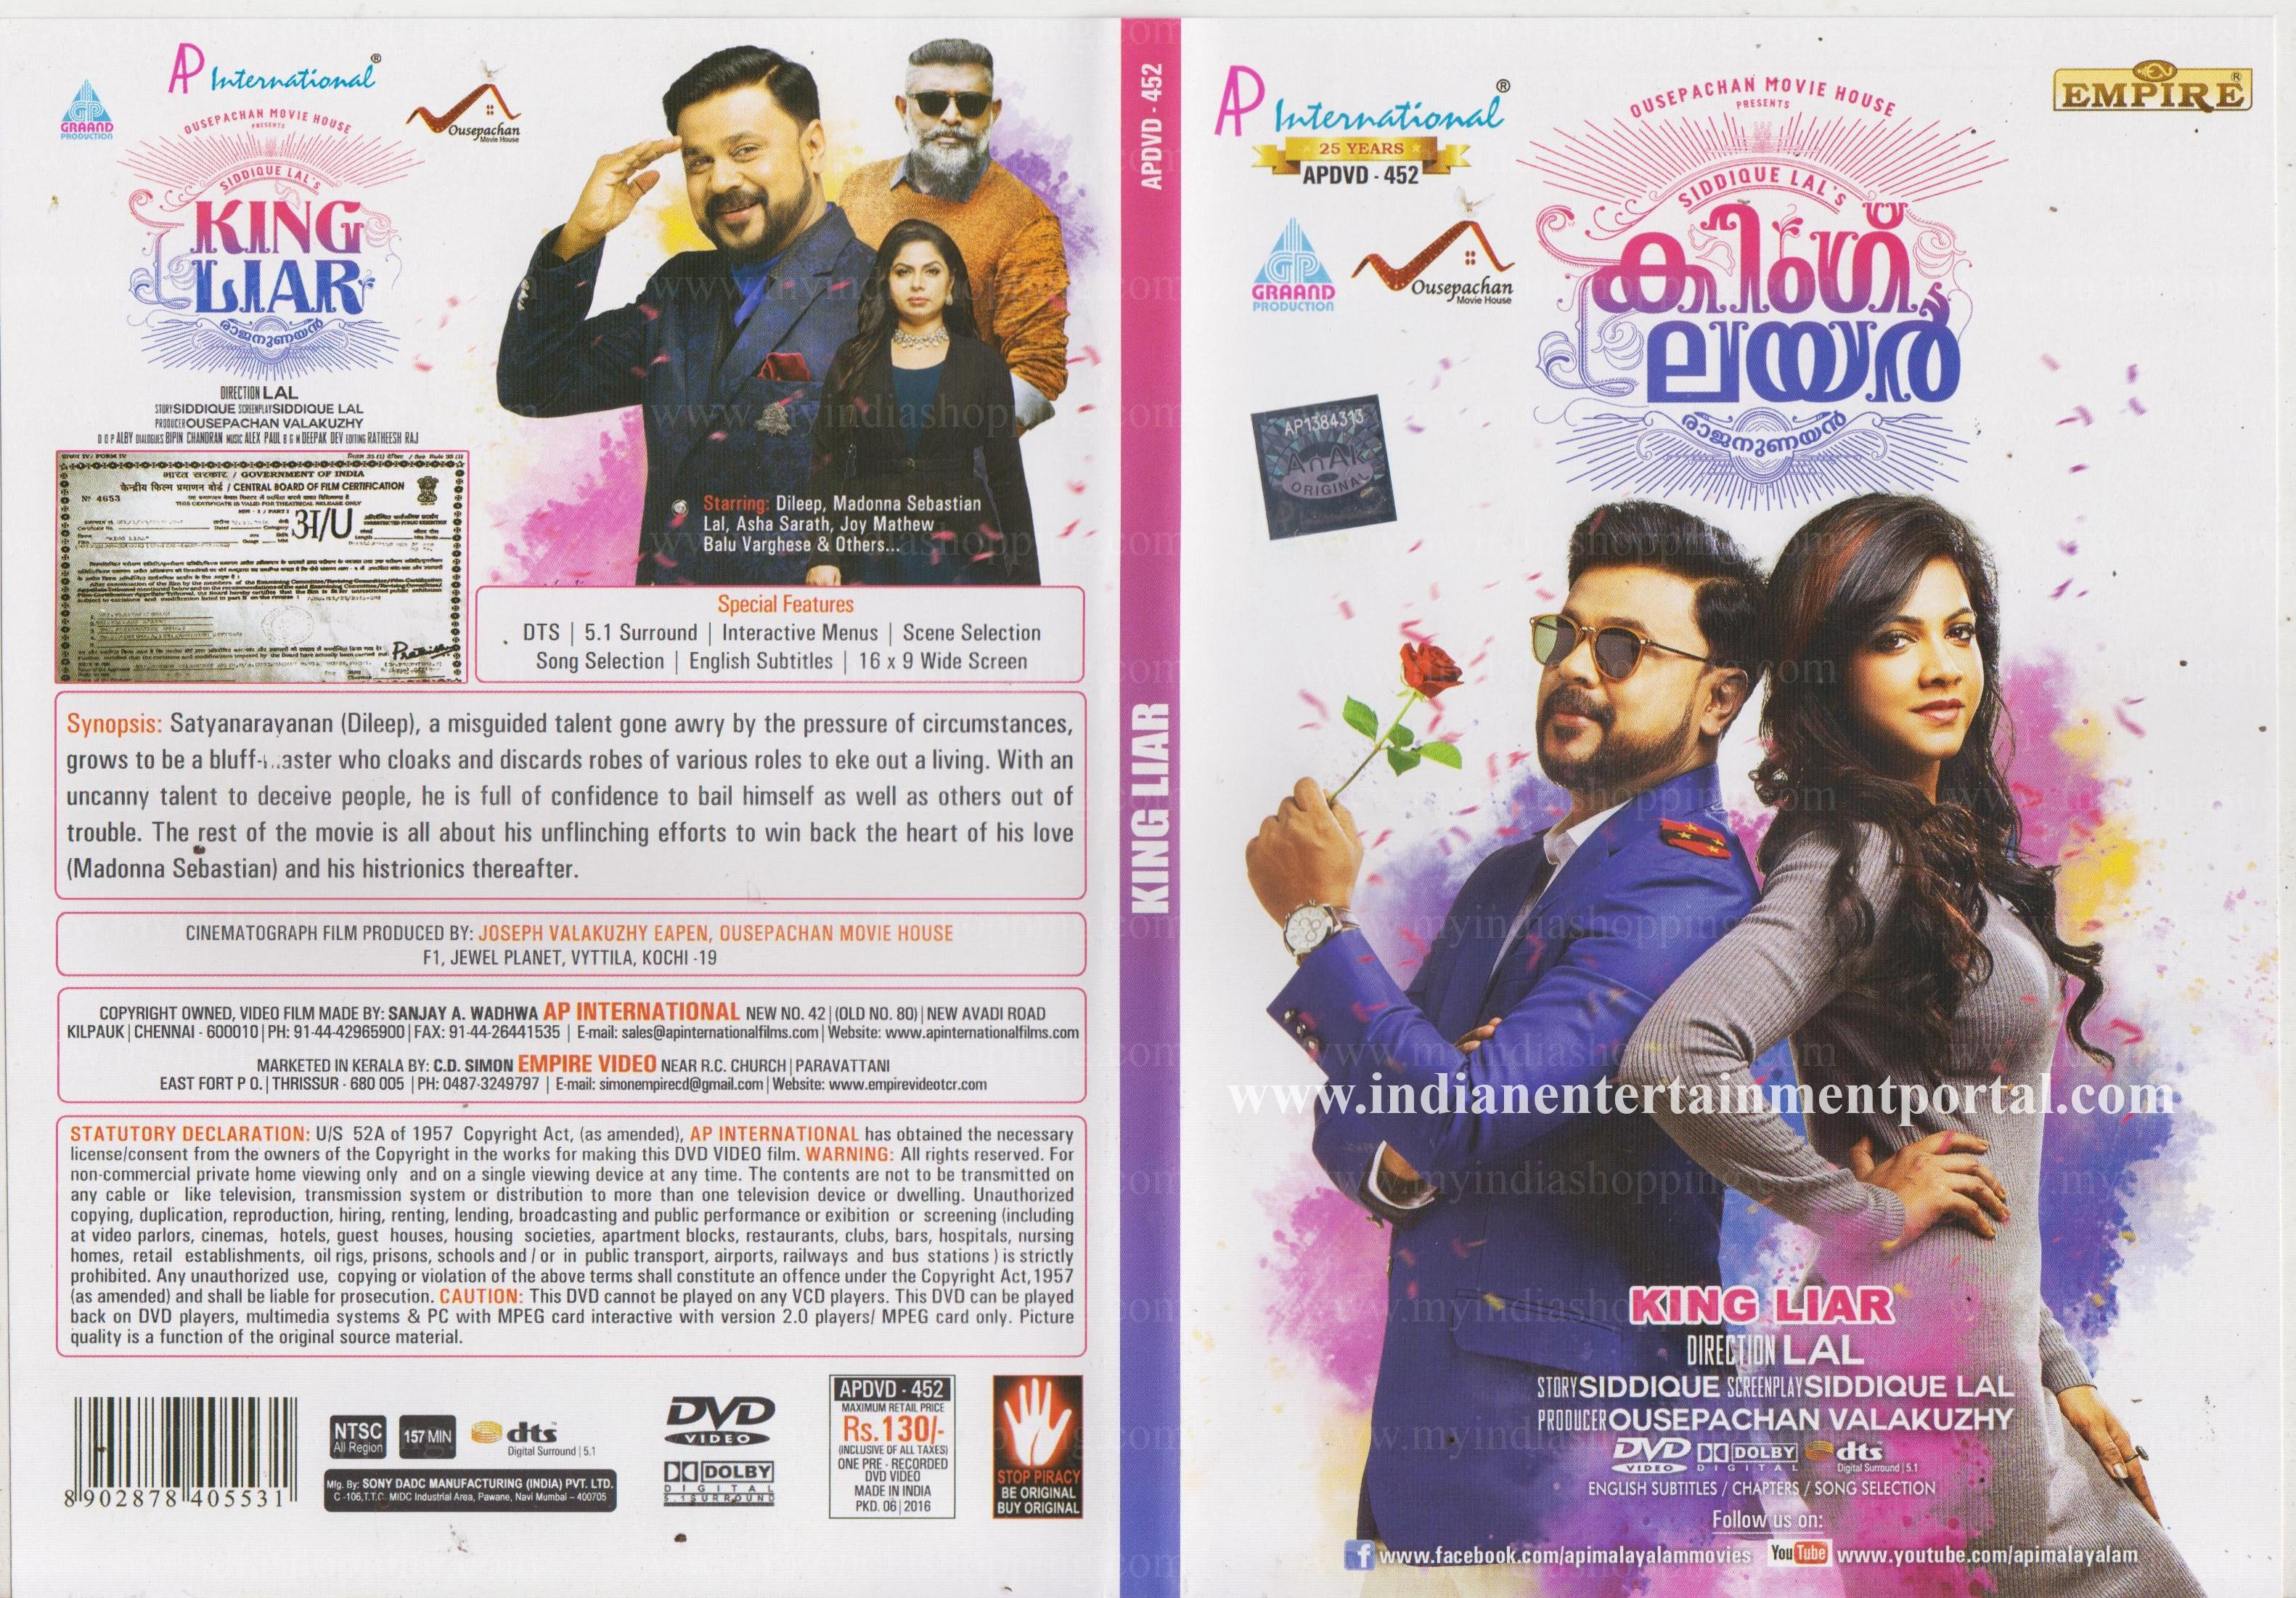 KING LIAR DVD & VCD Released